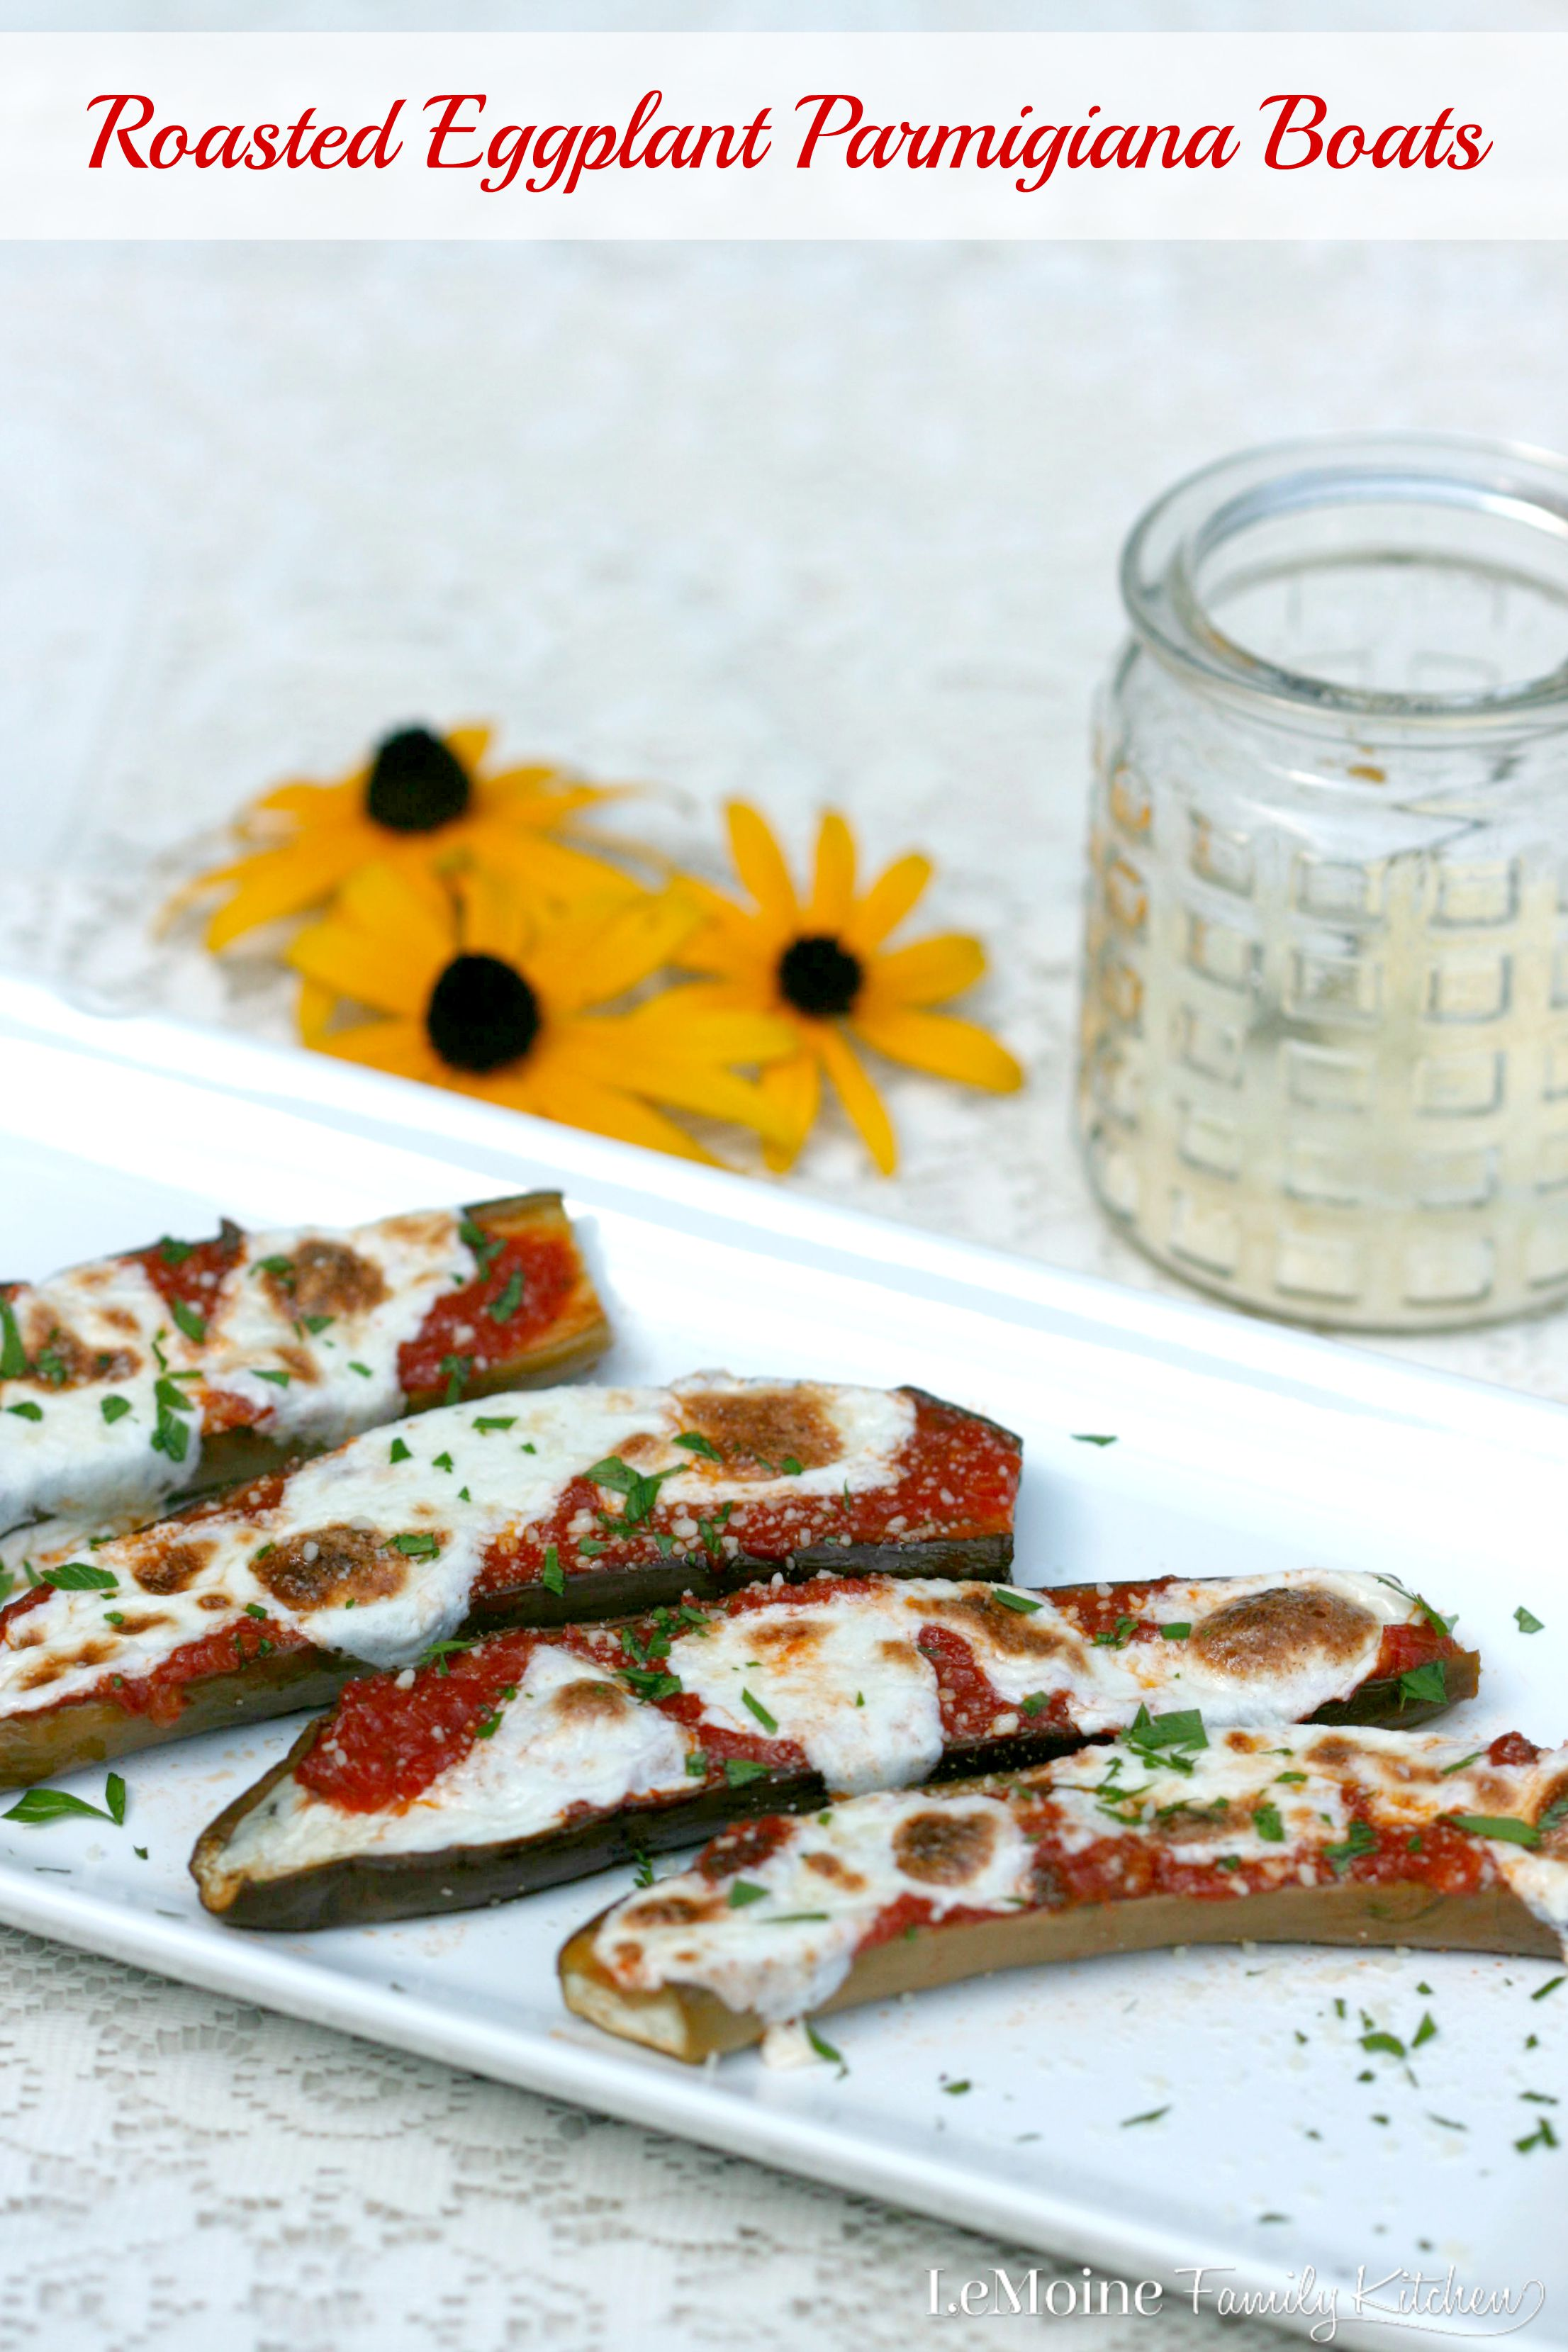 Roasted Eggplant Parmigiana Boats